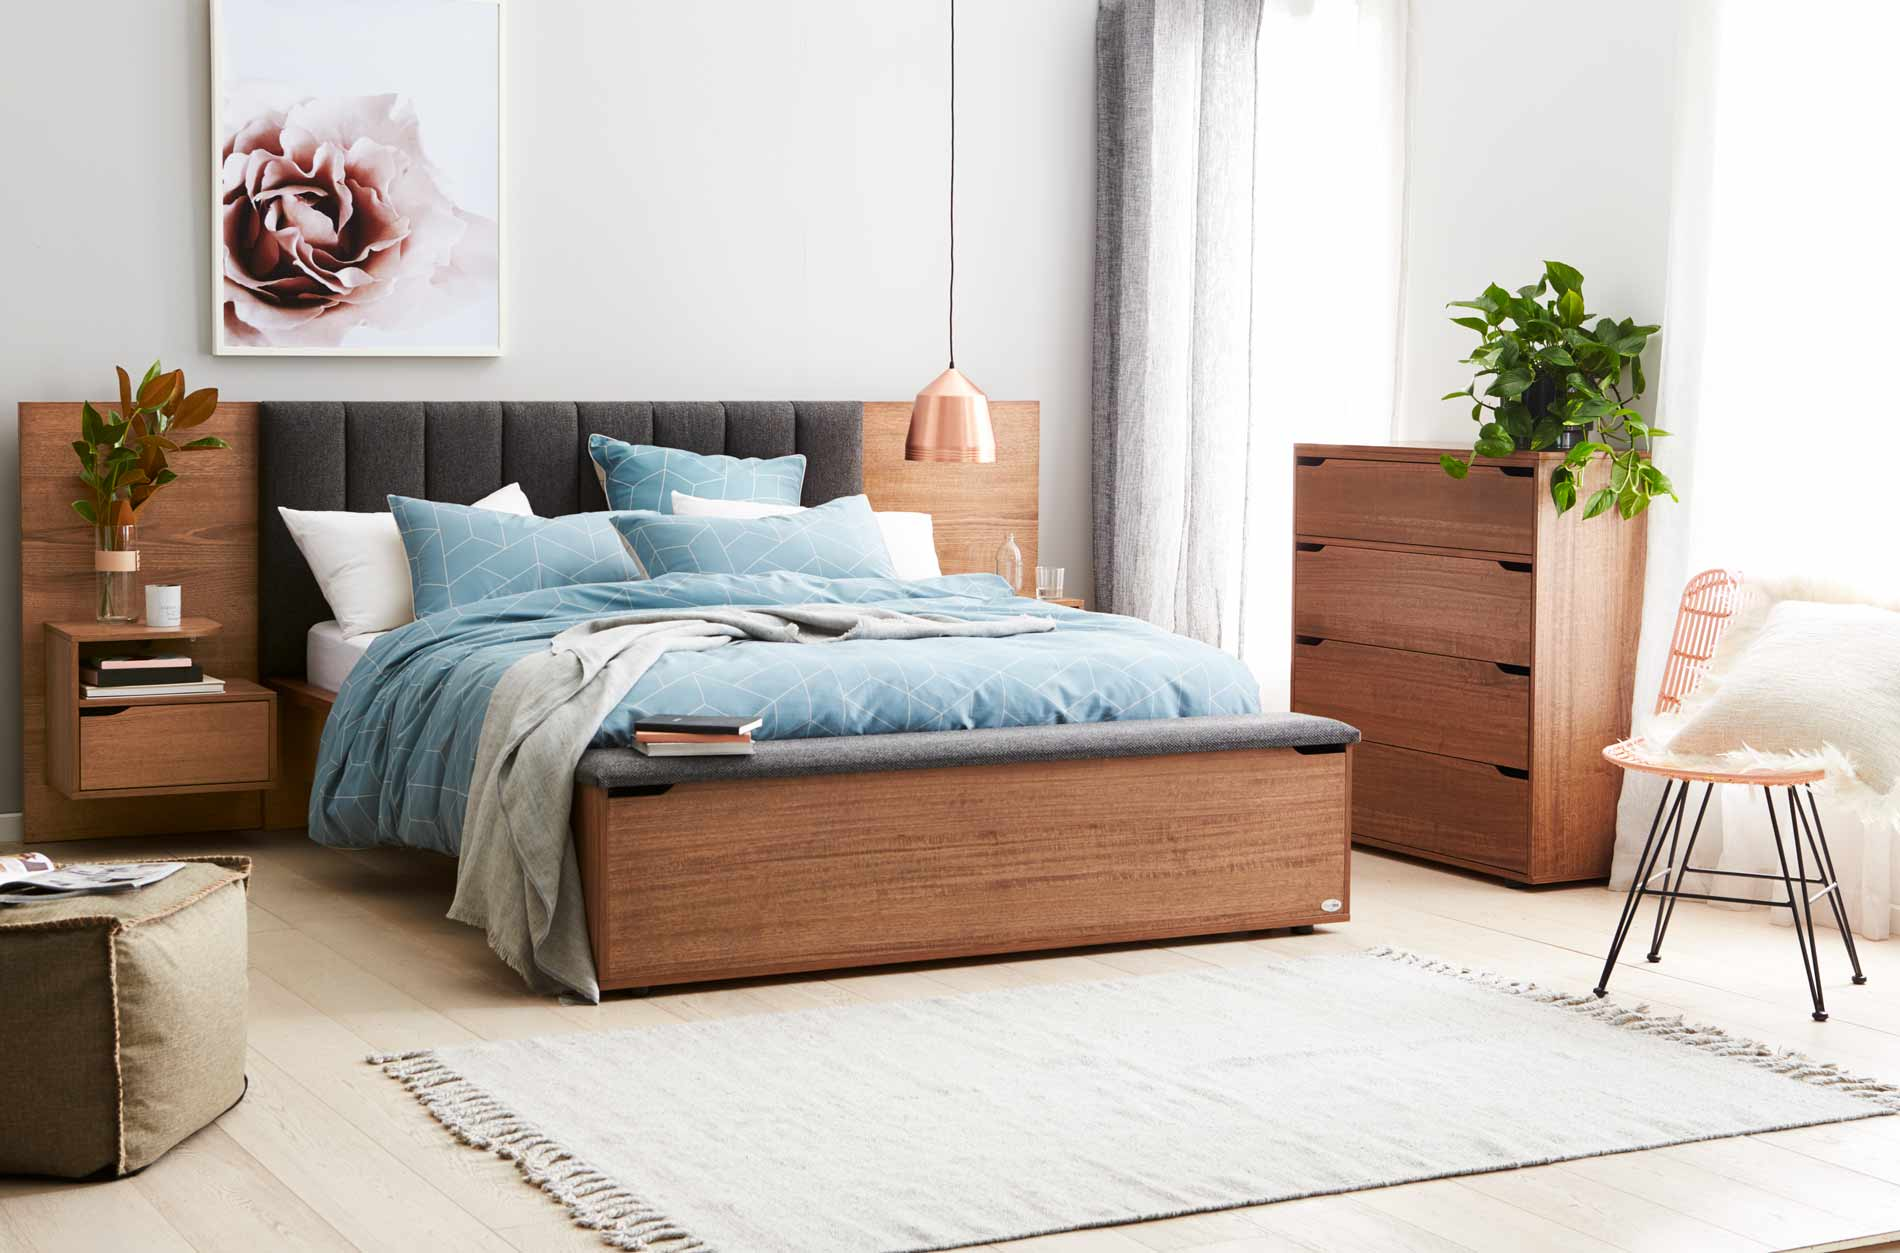 Lincoln bed frame w upholstered bedhead storage foot box for Foot of bed furniture